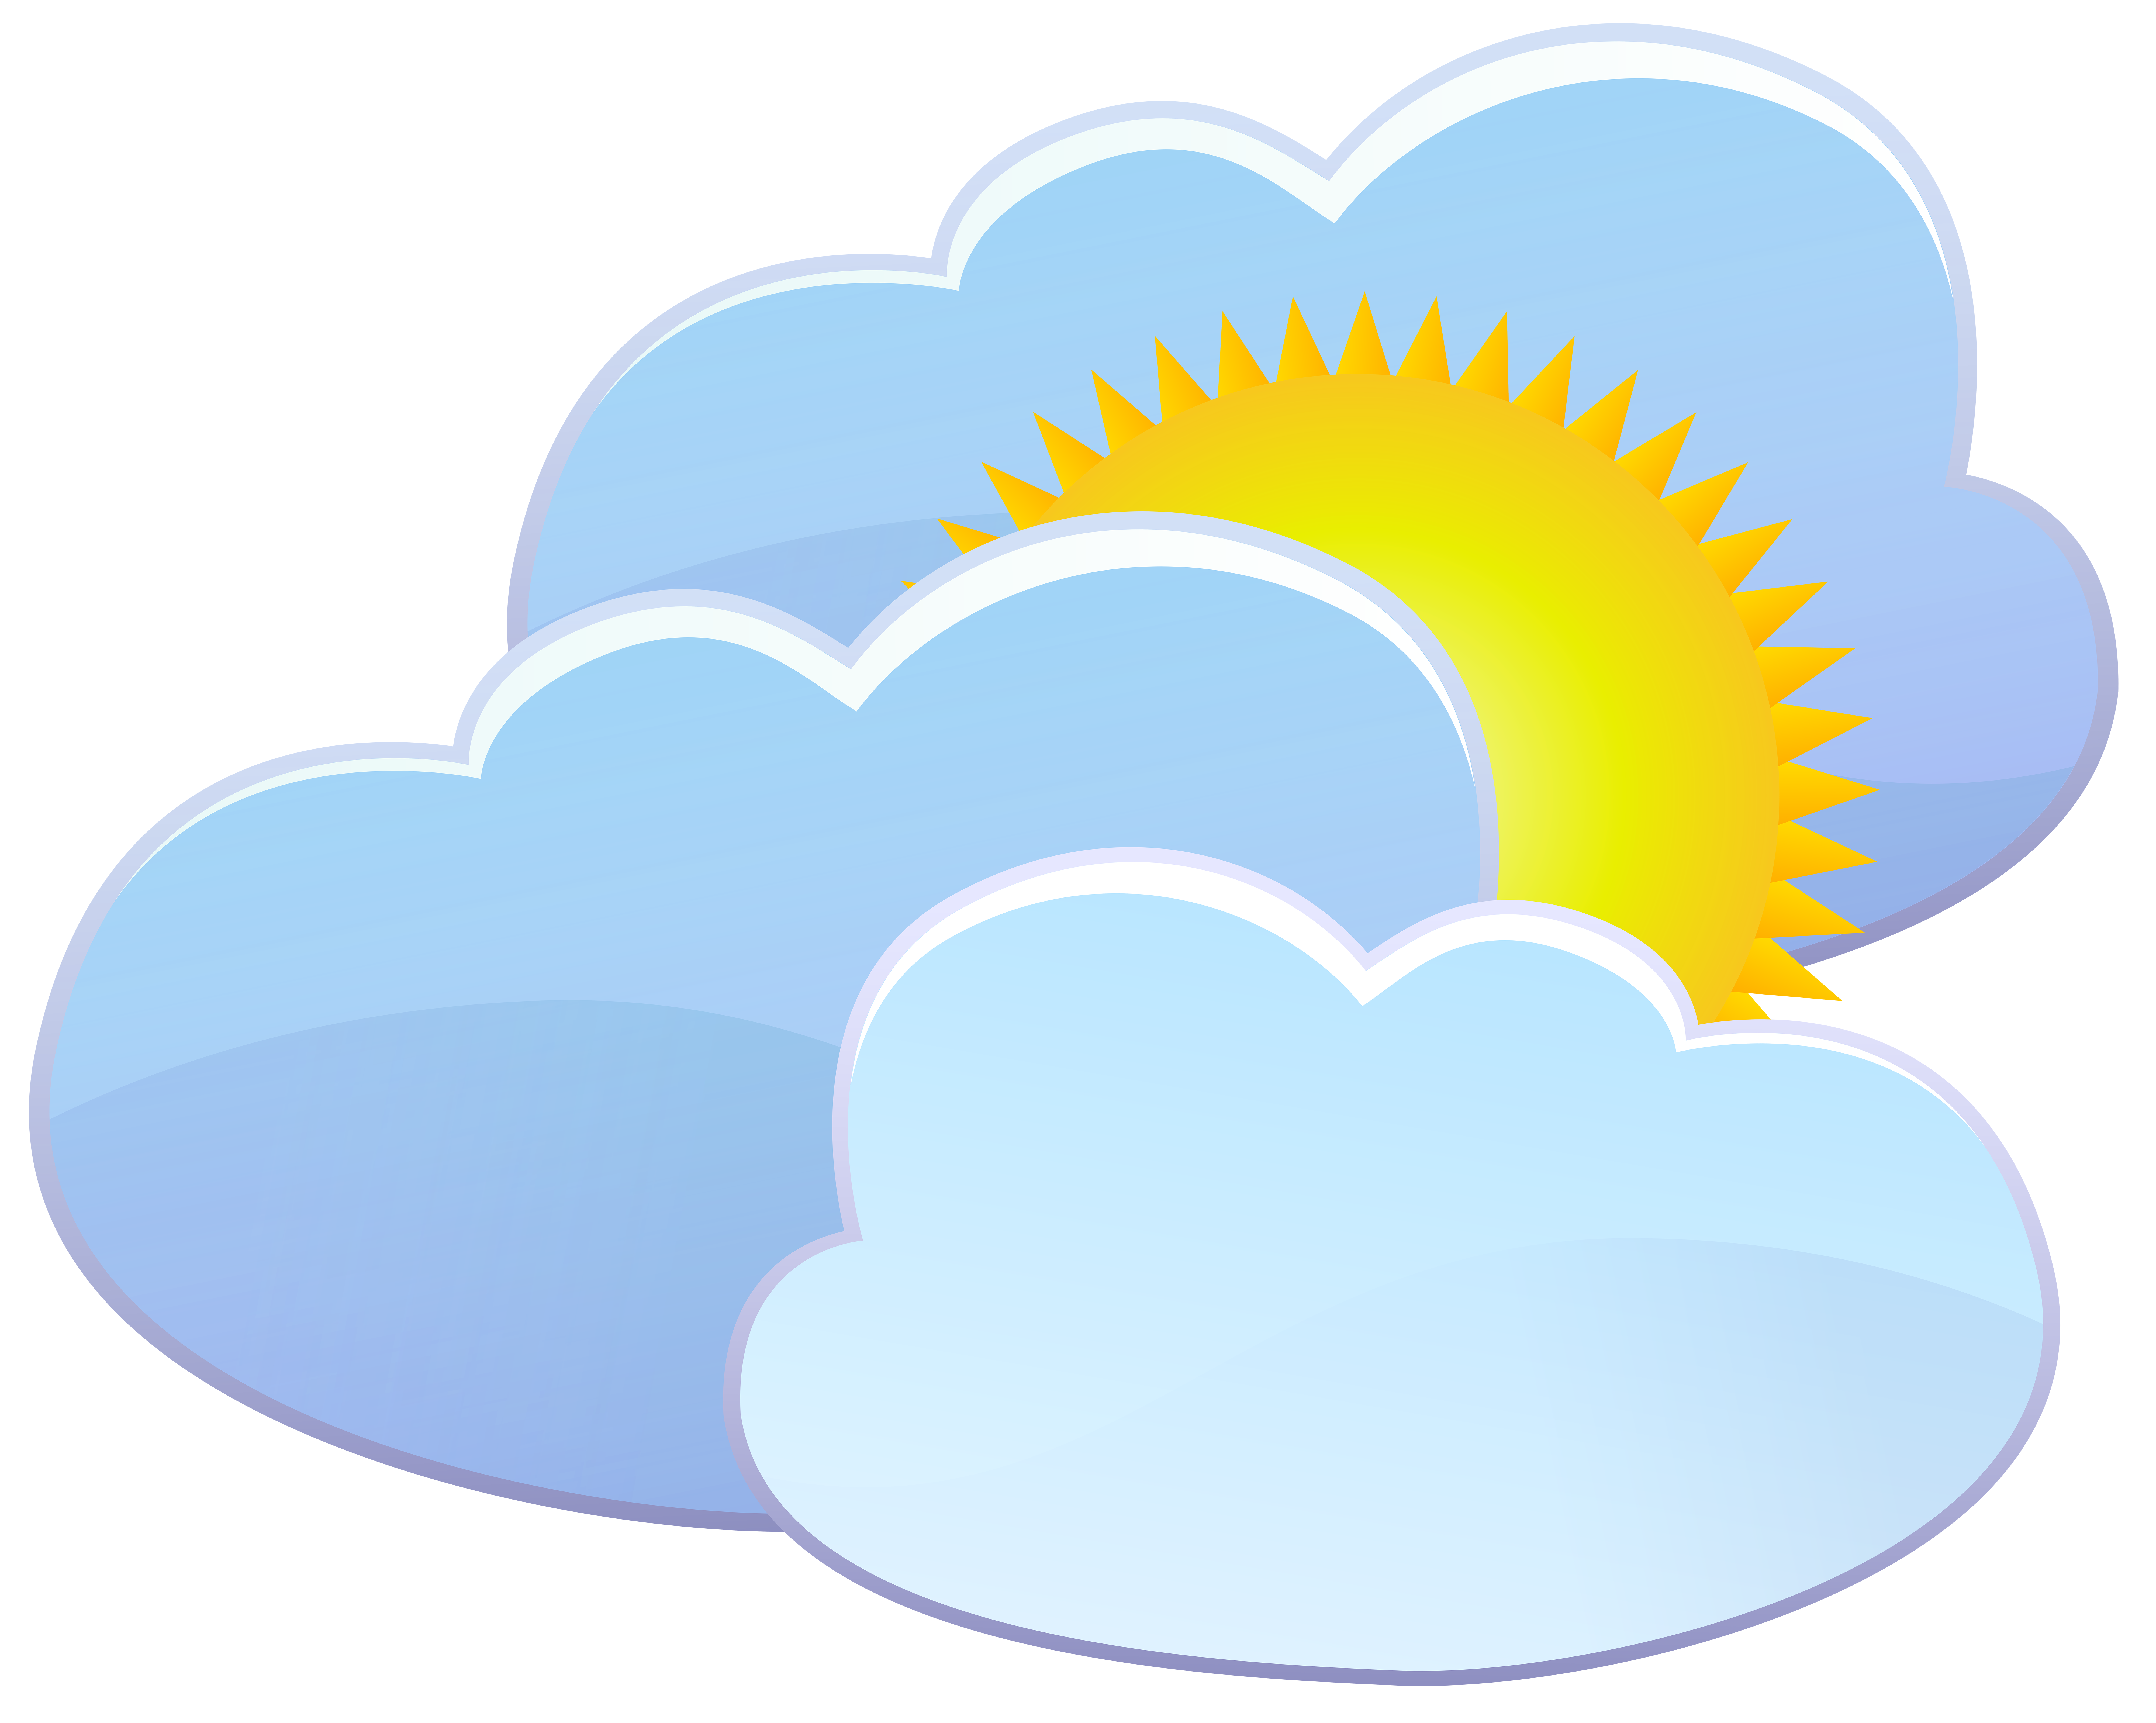 png stock Sun with clouds clipart. Three and weather icon